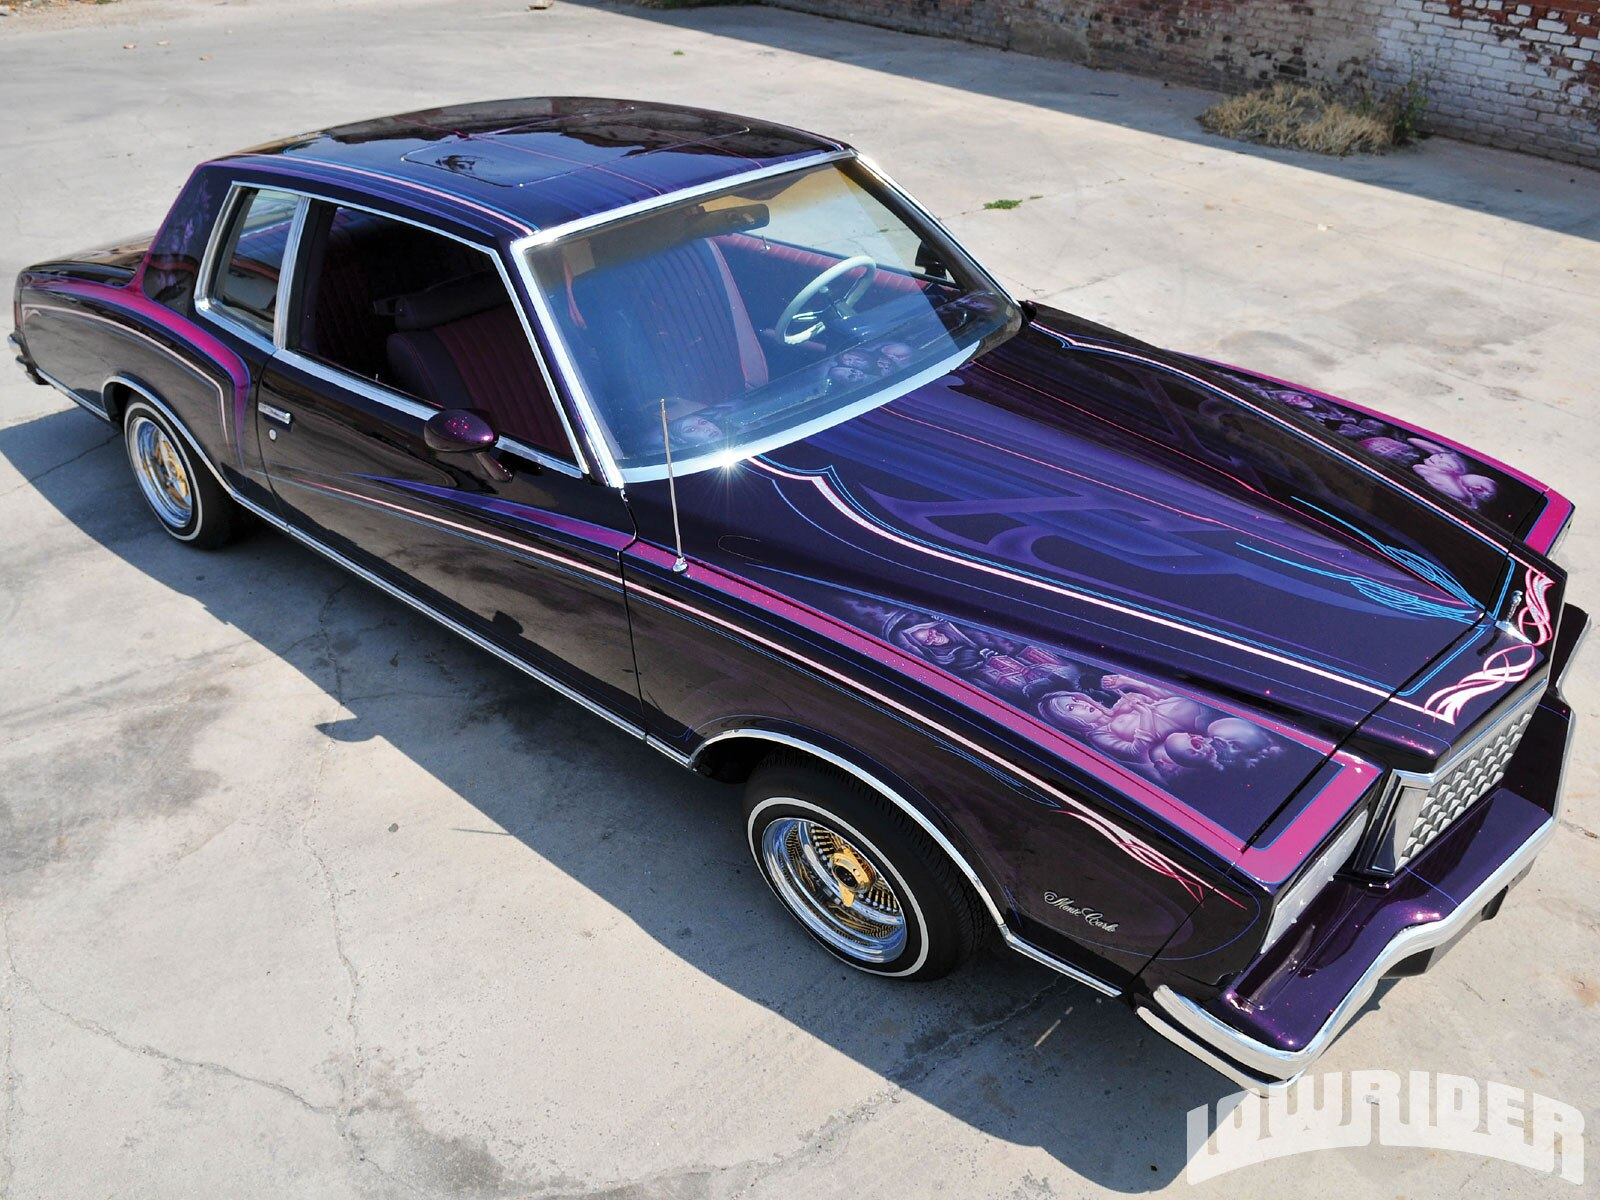 lrmp-1011-01-o-1978-chevrolet-monte-carlo-side-view